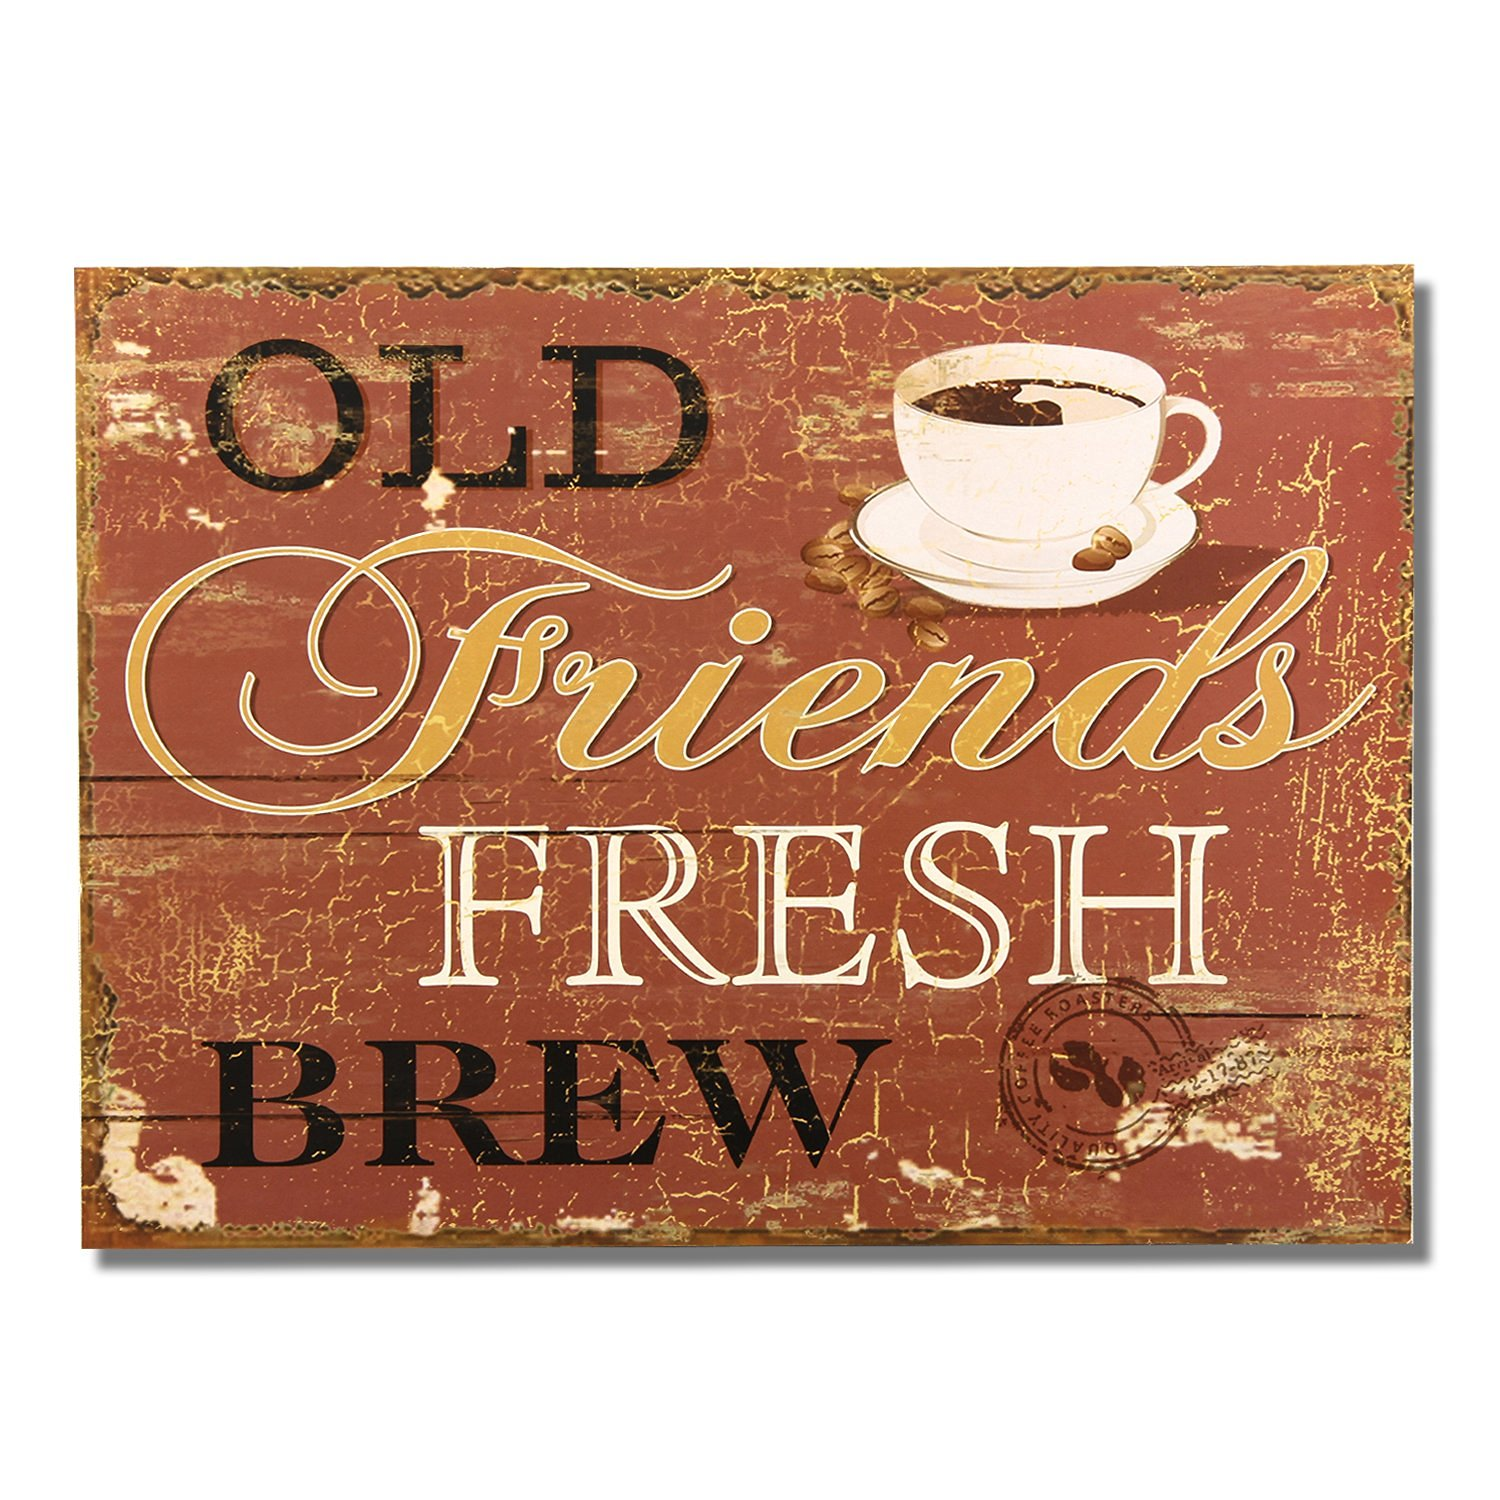 "Adeco Decorative Wood Wall Hanging Sign Plaque ""Old Friends Fresh Brew"" Brown Gold Black Home Decor"